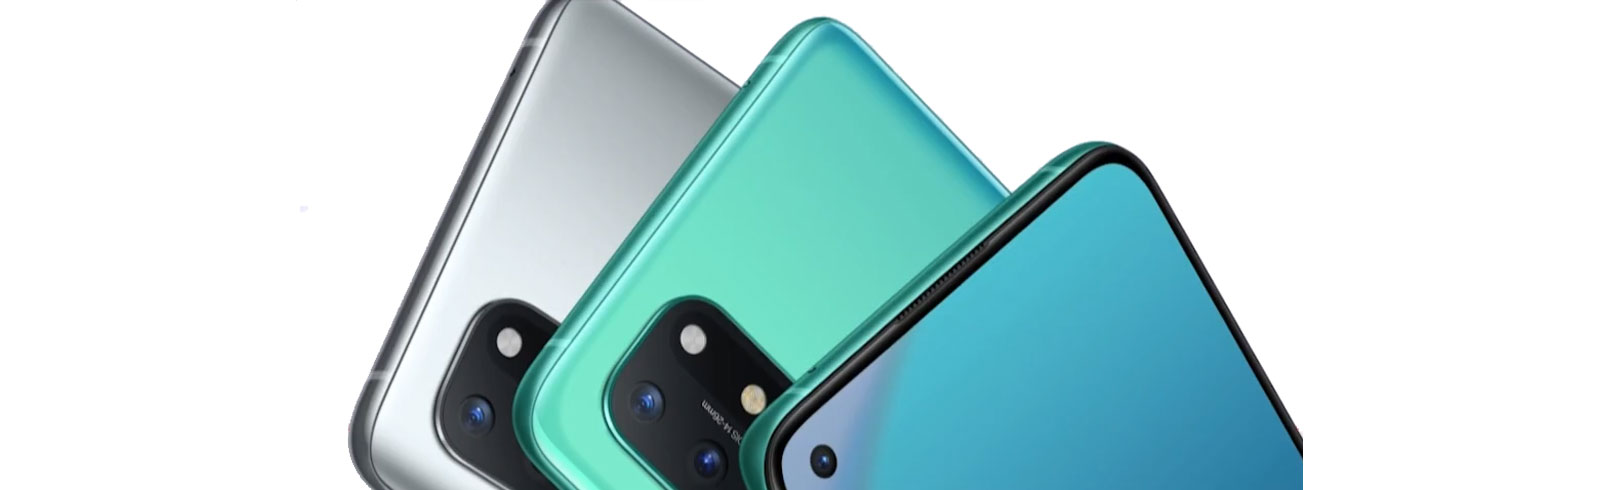 OnePlus 8T pricing and availability in Europe and North America